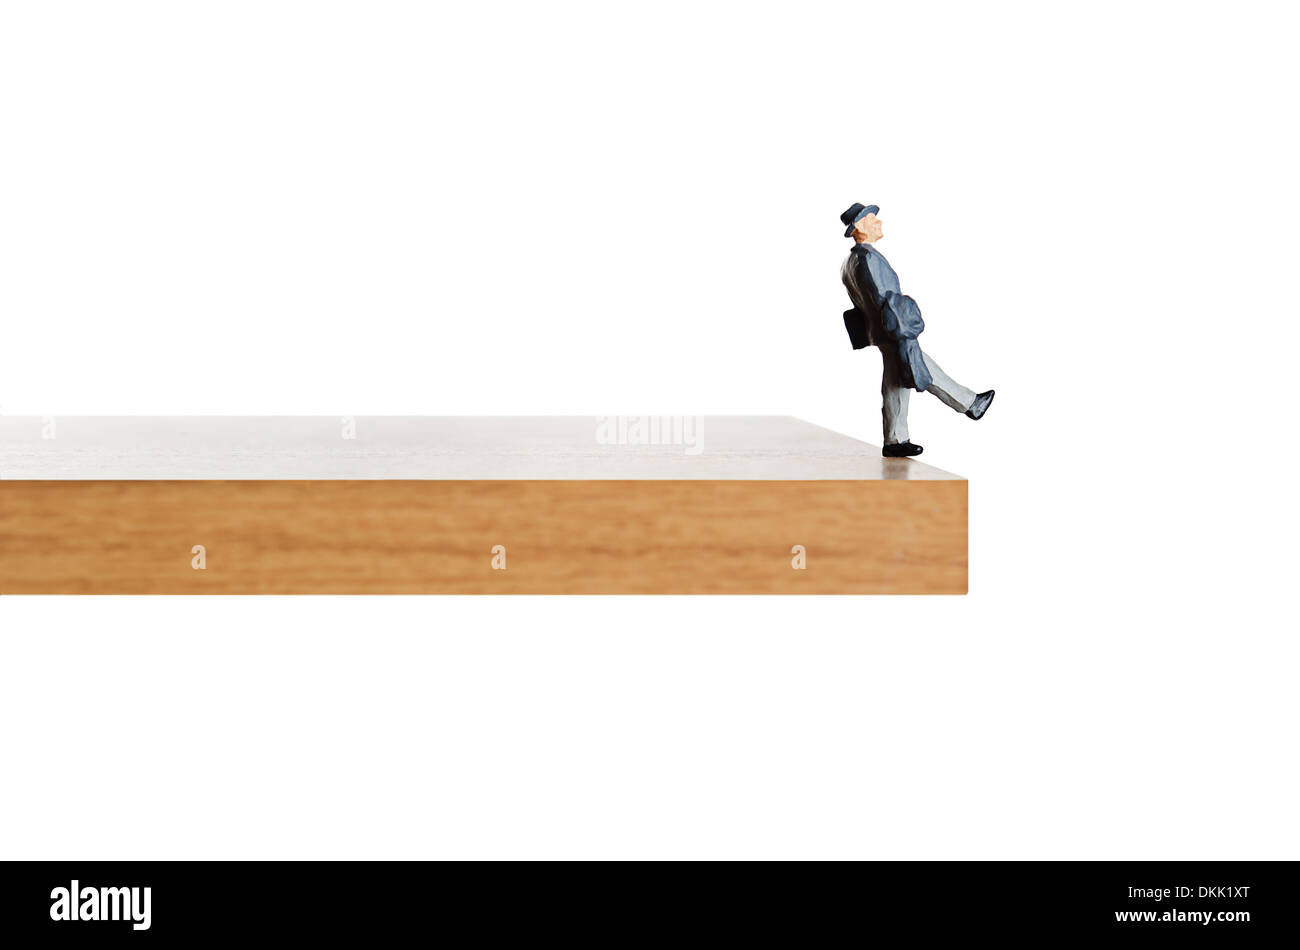 Walking off the edge. - Stock Image